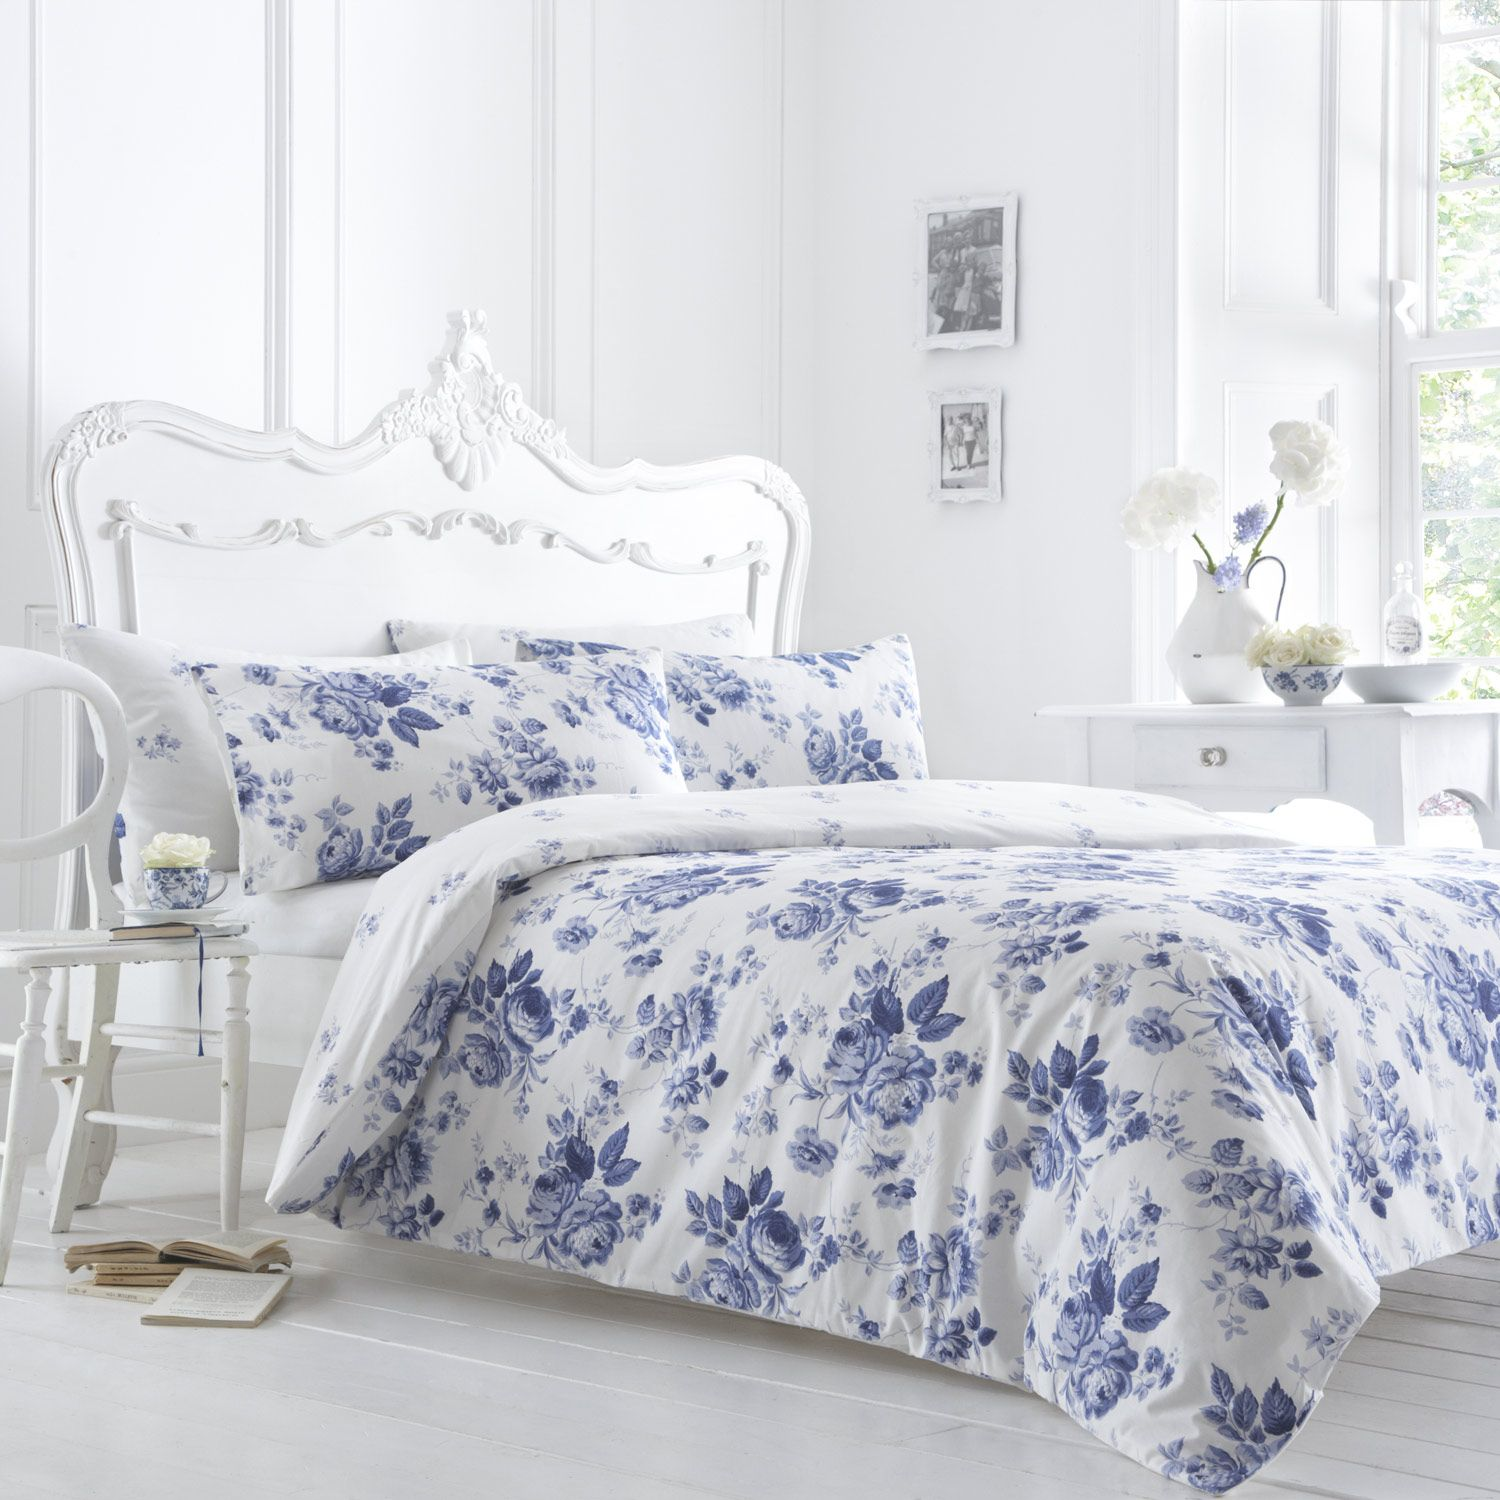 room covers comforters bedding cute of cotton full cozy white bedroom sets pretty queen and colorful cover duvet inexpensive for blue comforter size